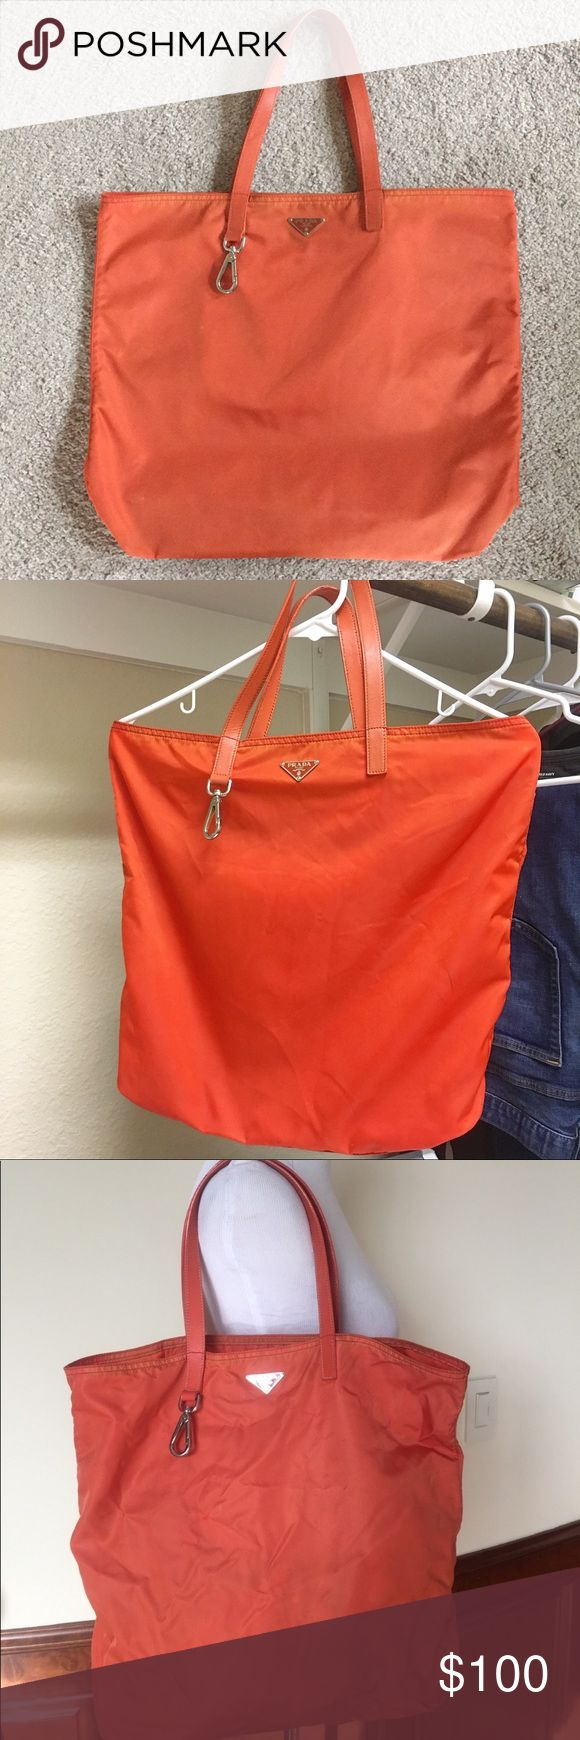 ***SALE***Authentic Orange Prada nylon tote bag It is already washed so it looks great than before i purchased it, it is big and easy to carry, still lots of life to give and very cute to carry as your to go bag, leather straps are in great condition, no flaws or holes, just the pen marks inside the bag and some bit of fading on the bottom base due to normal wear. pls review the photos and ask me anything about the bag before purchasing,  pls lower your expectation because this pretty bag is…